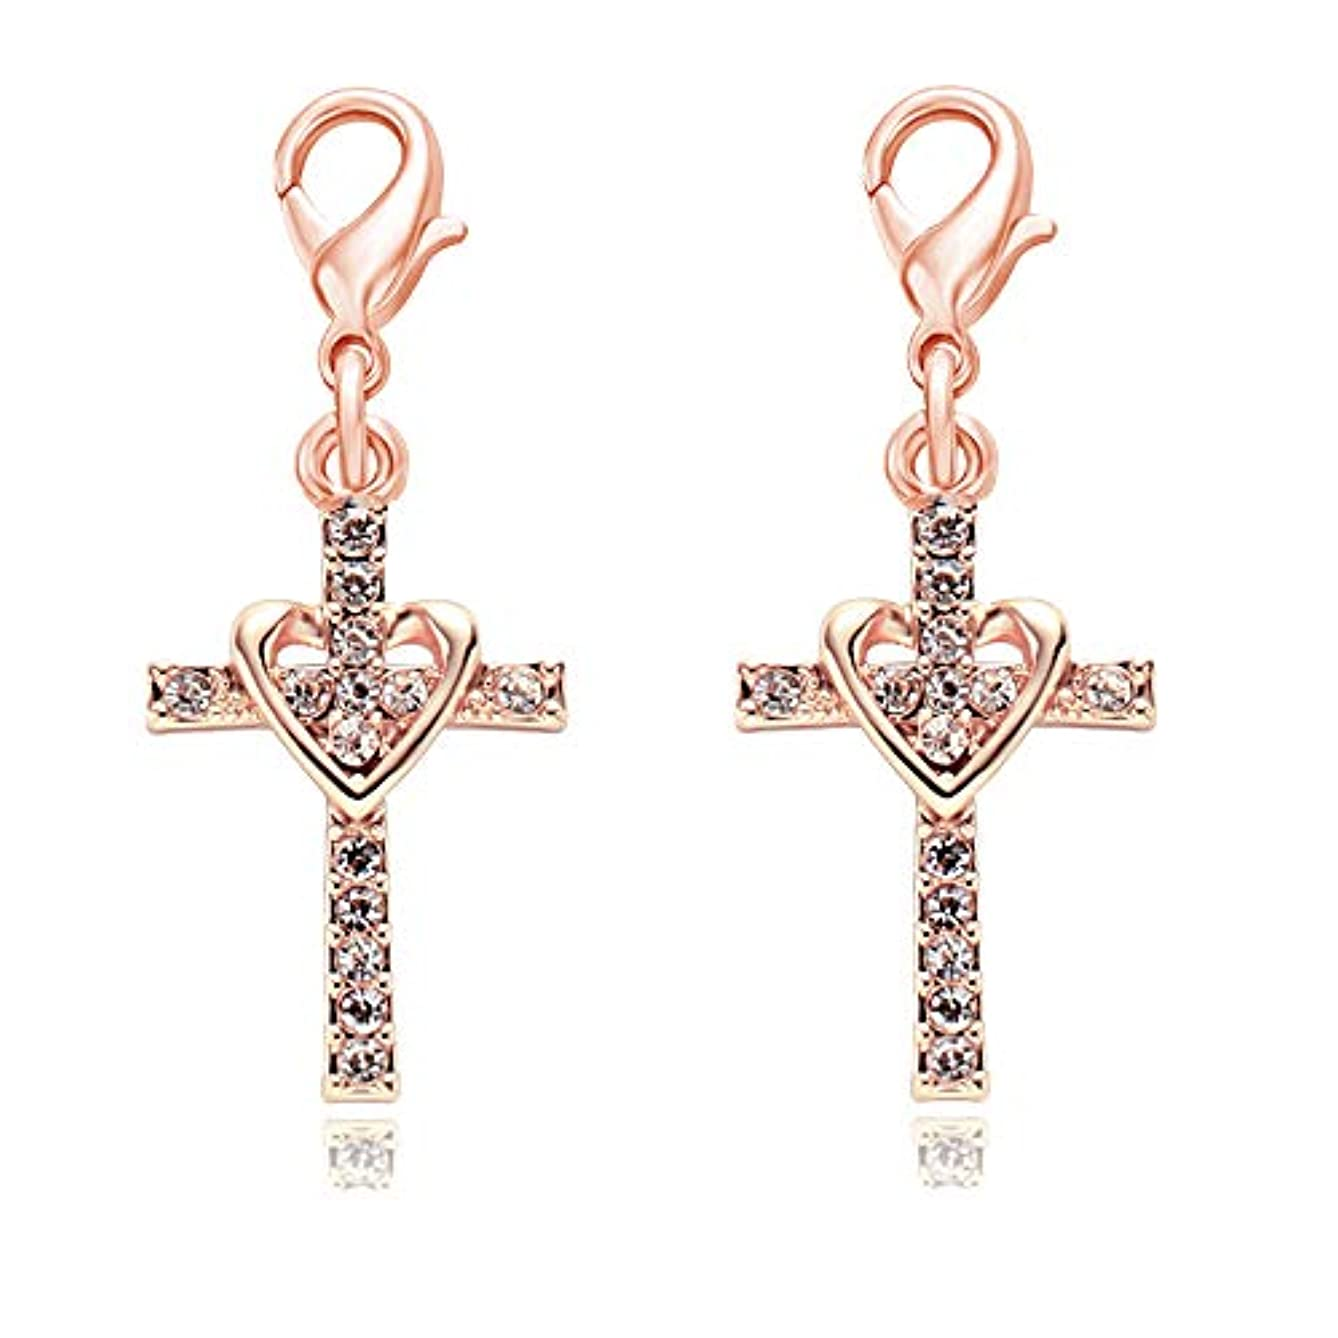 SenFai Heart Cross Crystal Personality Charm Pendant Great